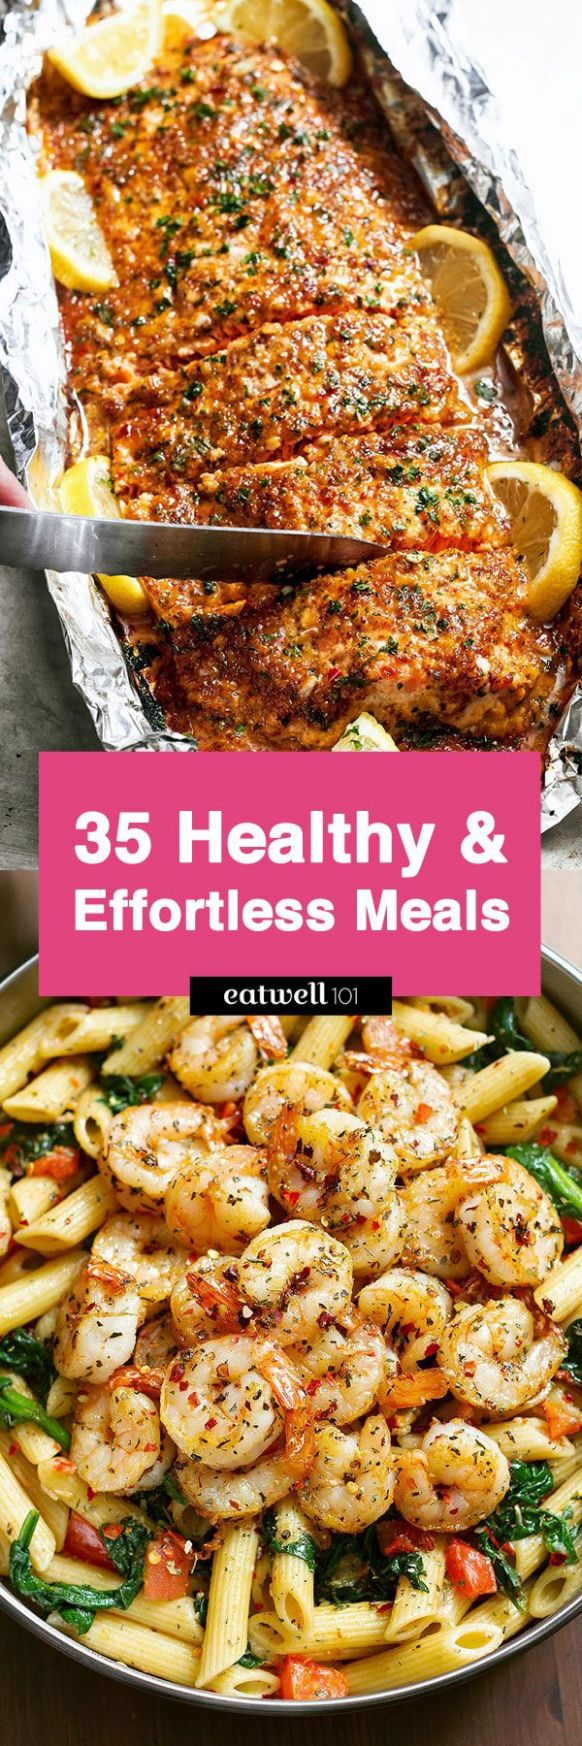 Easy Healthy Dinner Ideas: 12 Low Effort and Healthy Dinner ...